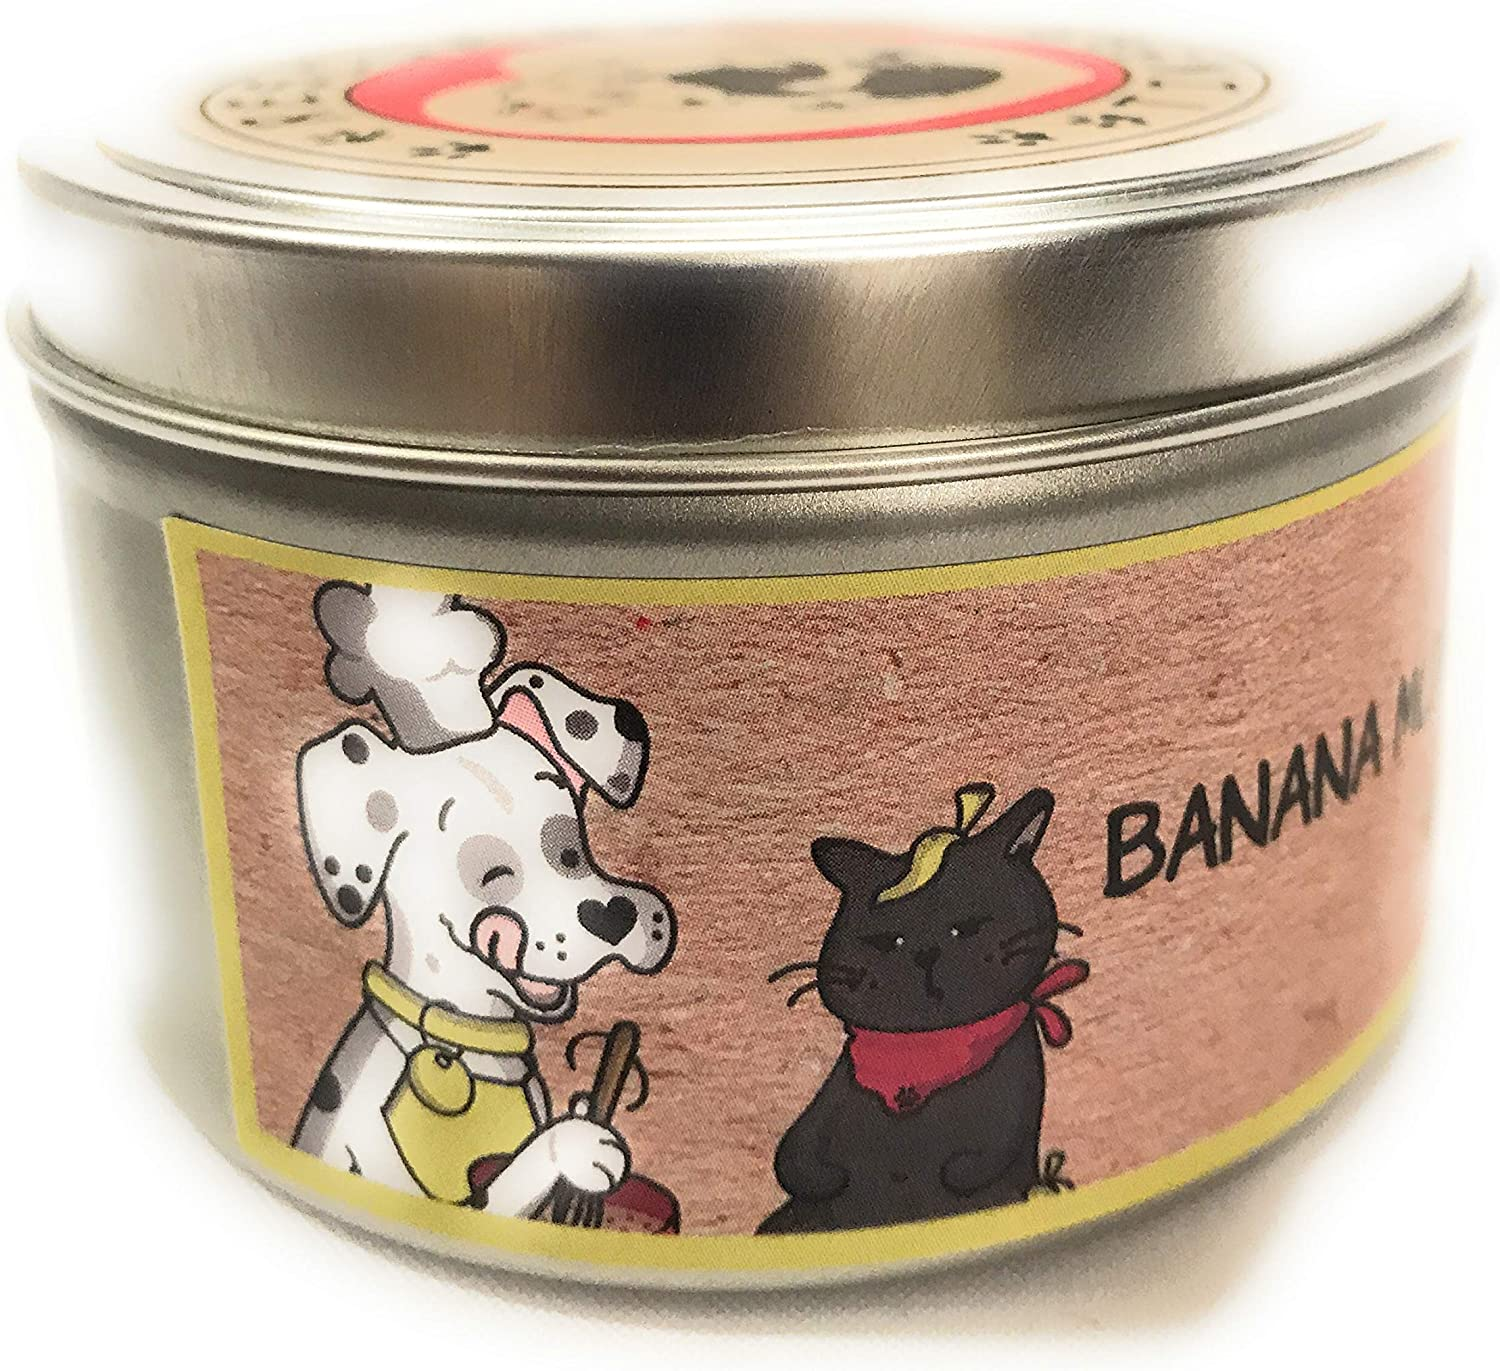 Fruity Candle Sample Pack  Natural Soy Wax  Set of 4 oz Mason Jar Candles  Portion of Proceeds Donated to Animal Rescues